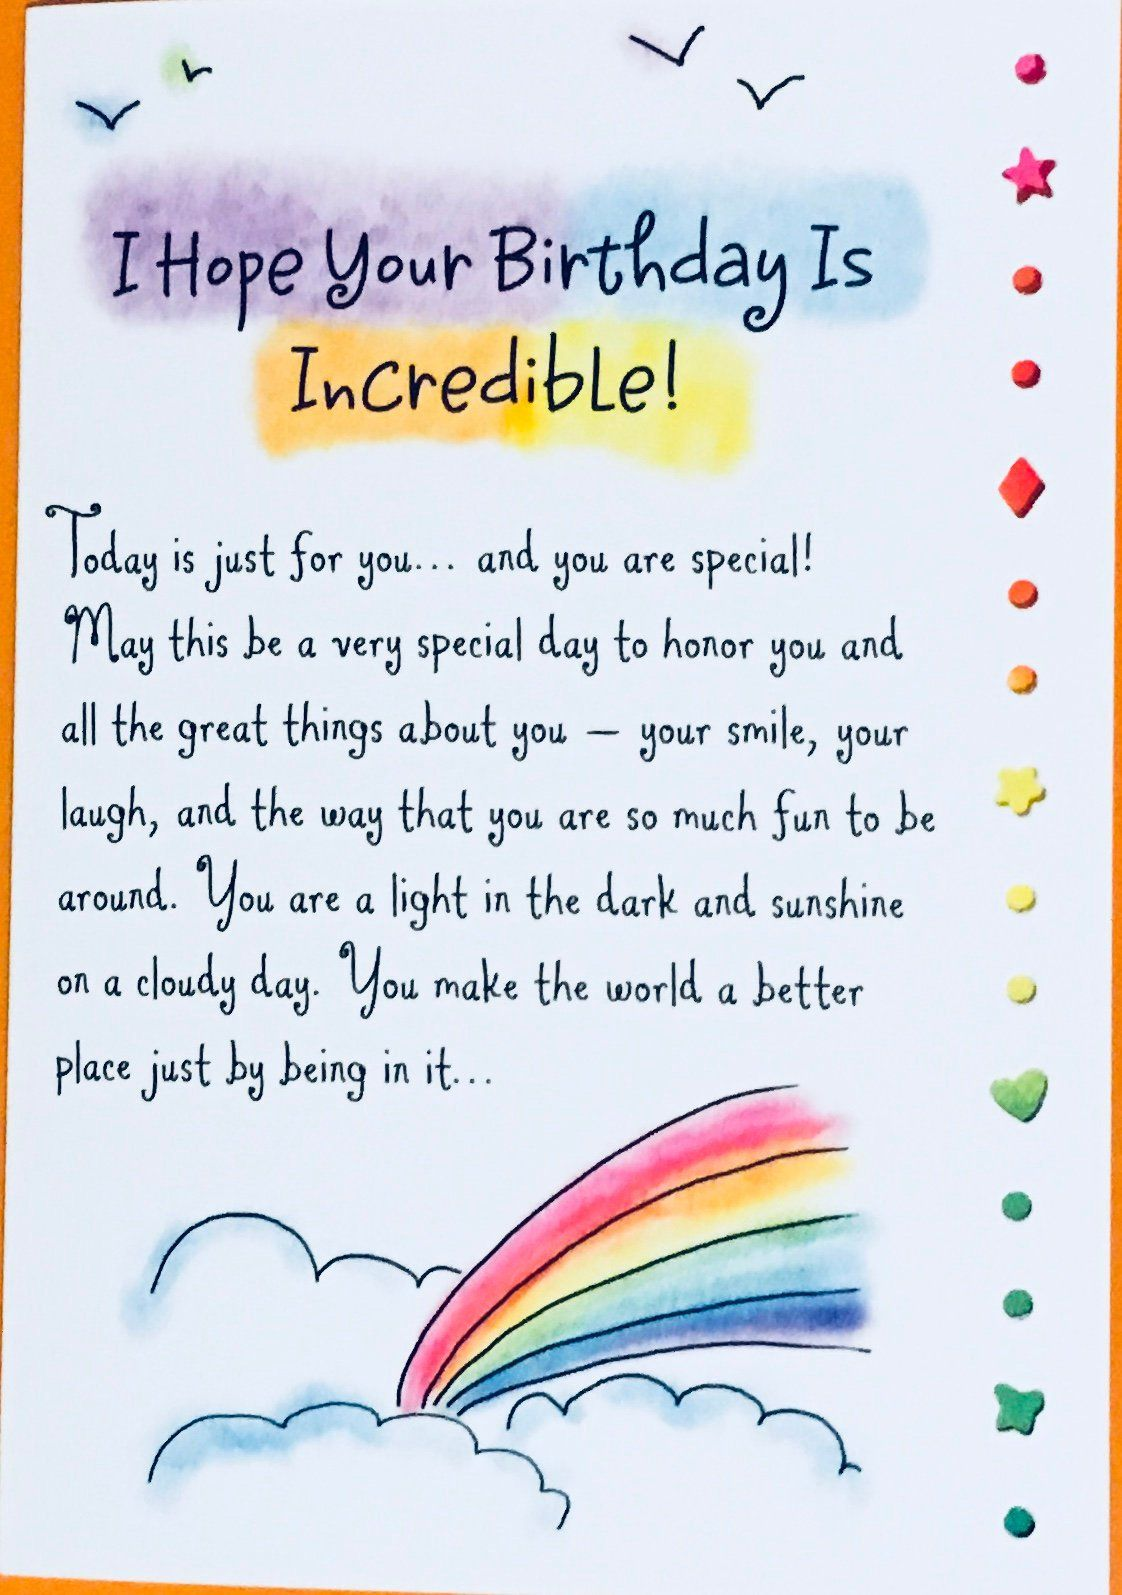 Hope Your Birthday Is Incredible Birthday Greeting Card Bday Card Happy Birthday Wishes Quotes Birthday Wishes Quotes Birthday Wishes For A Friend Messages